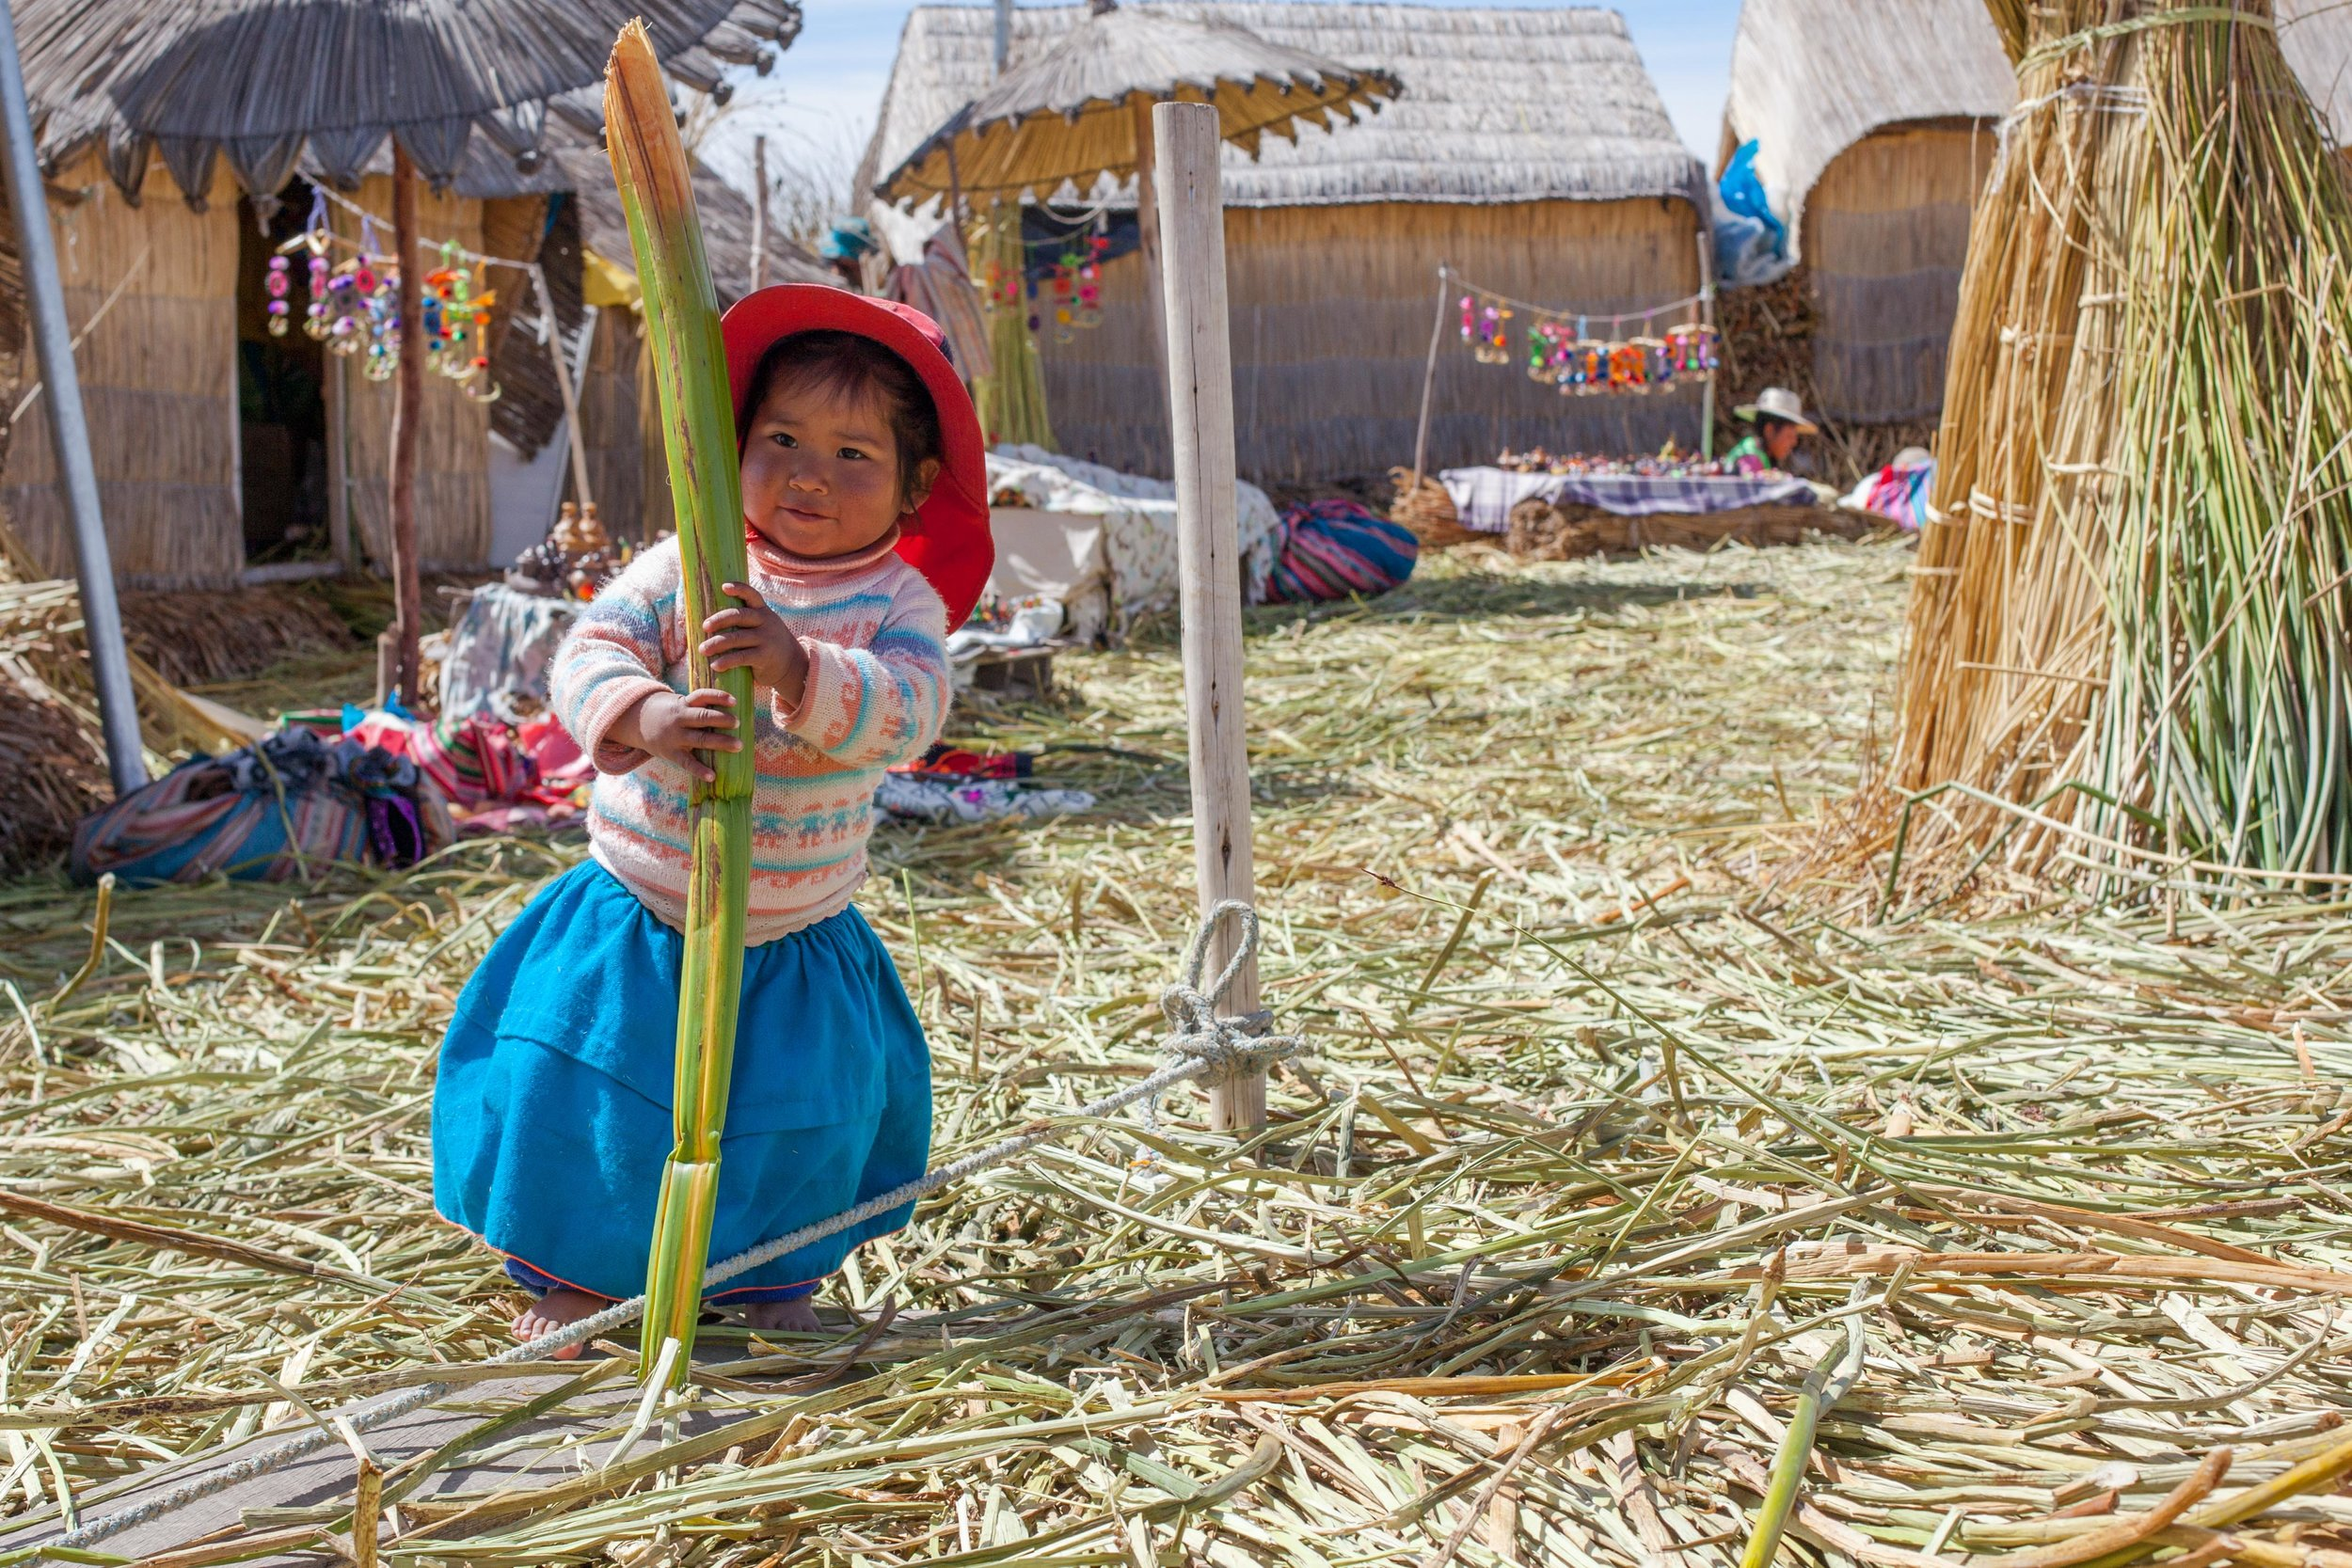 The colourful Uros islands in Puno, Peru.